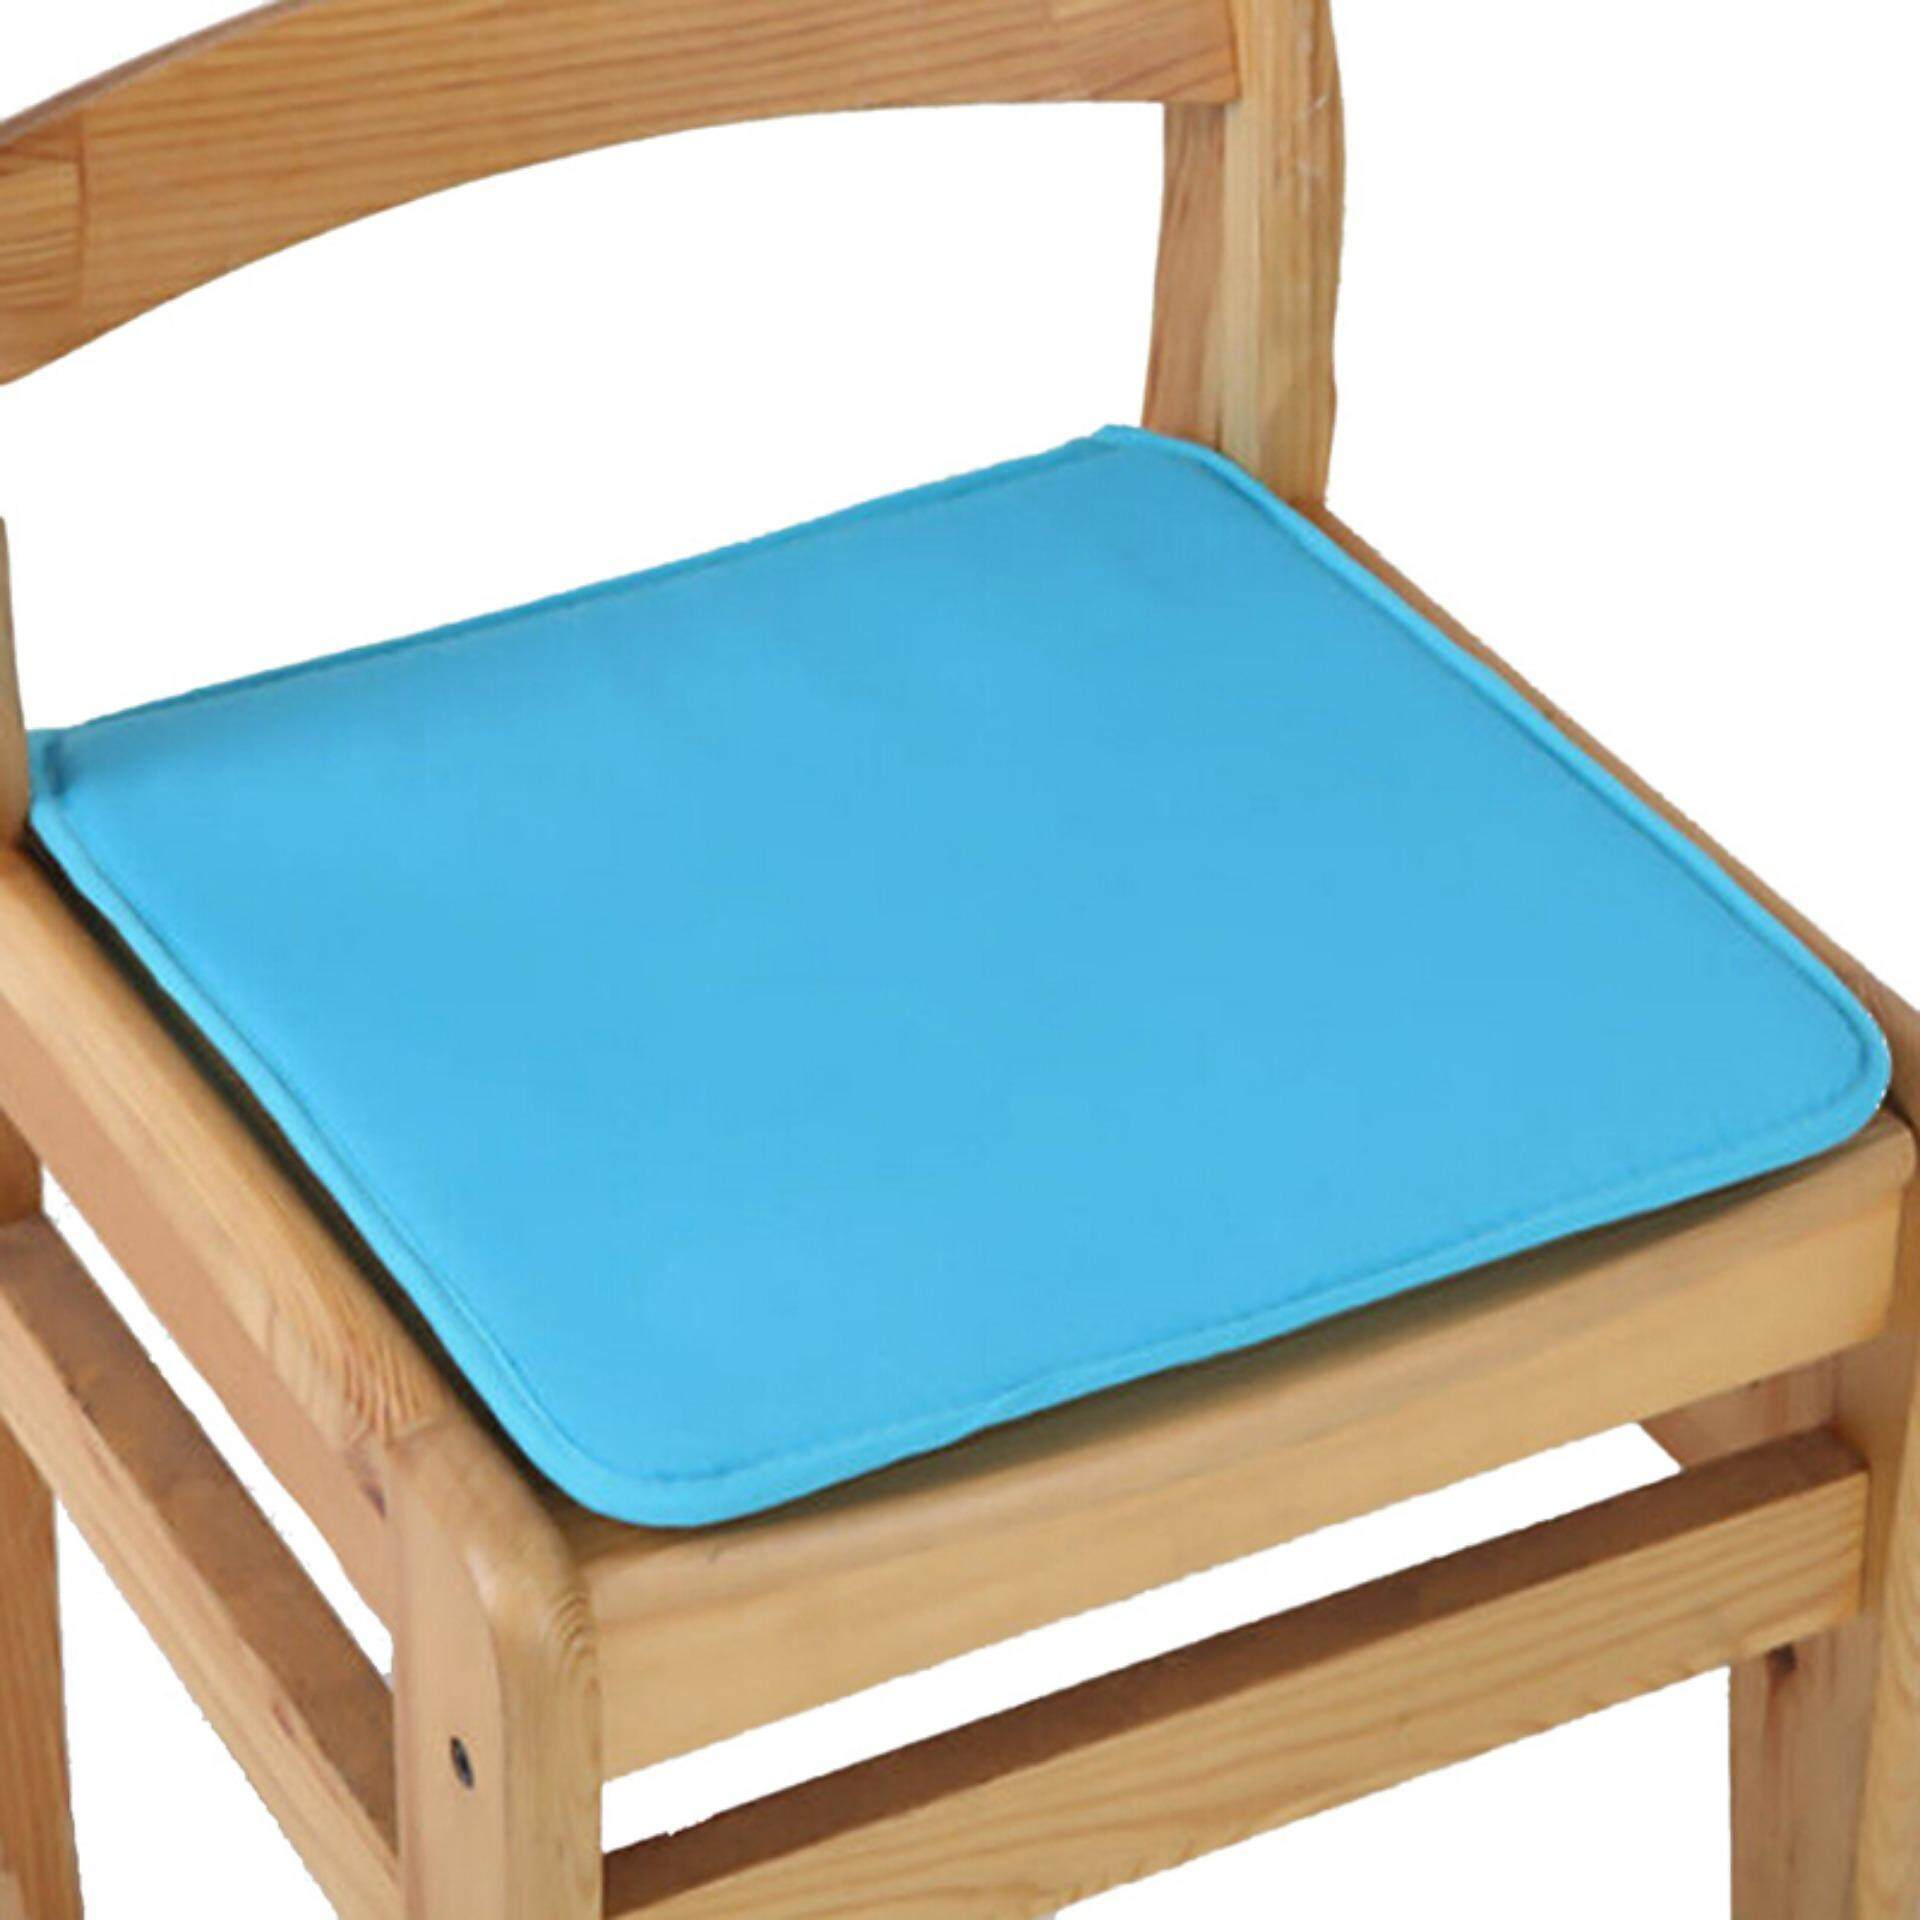 Cushion Office Chair Garden Indoor Dining Seat Pad Tie On Square Foam Patio Uk Sky Blue - intl